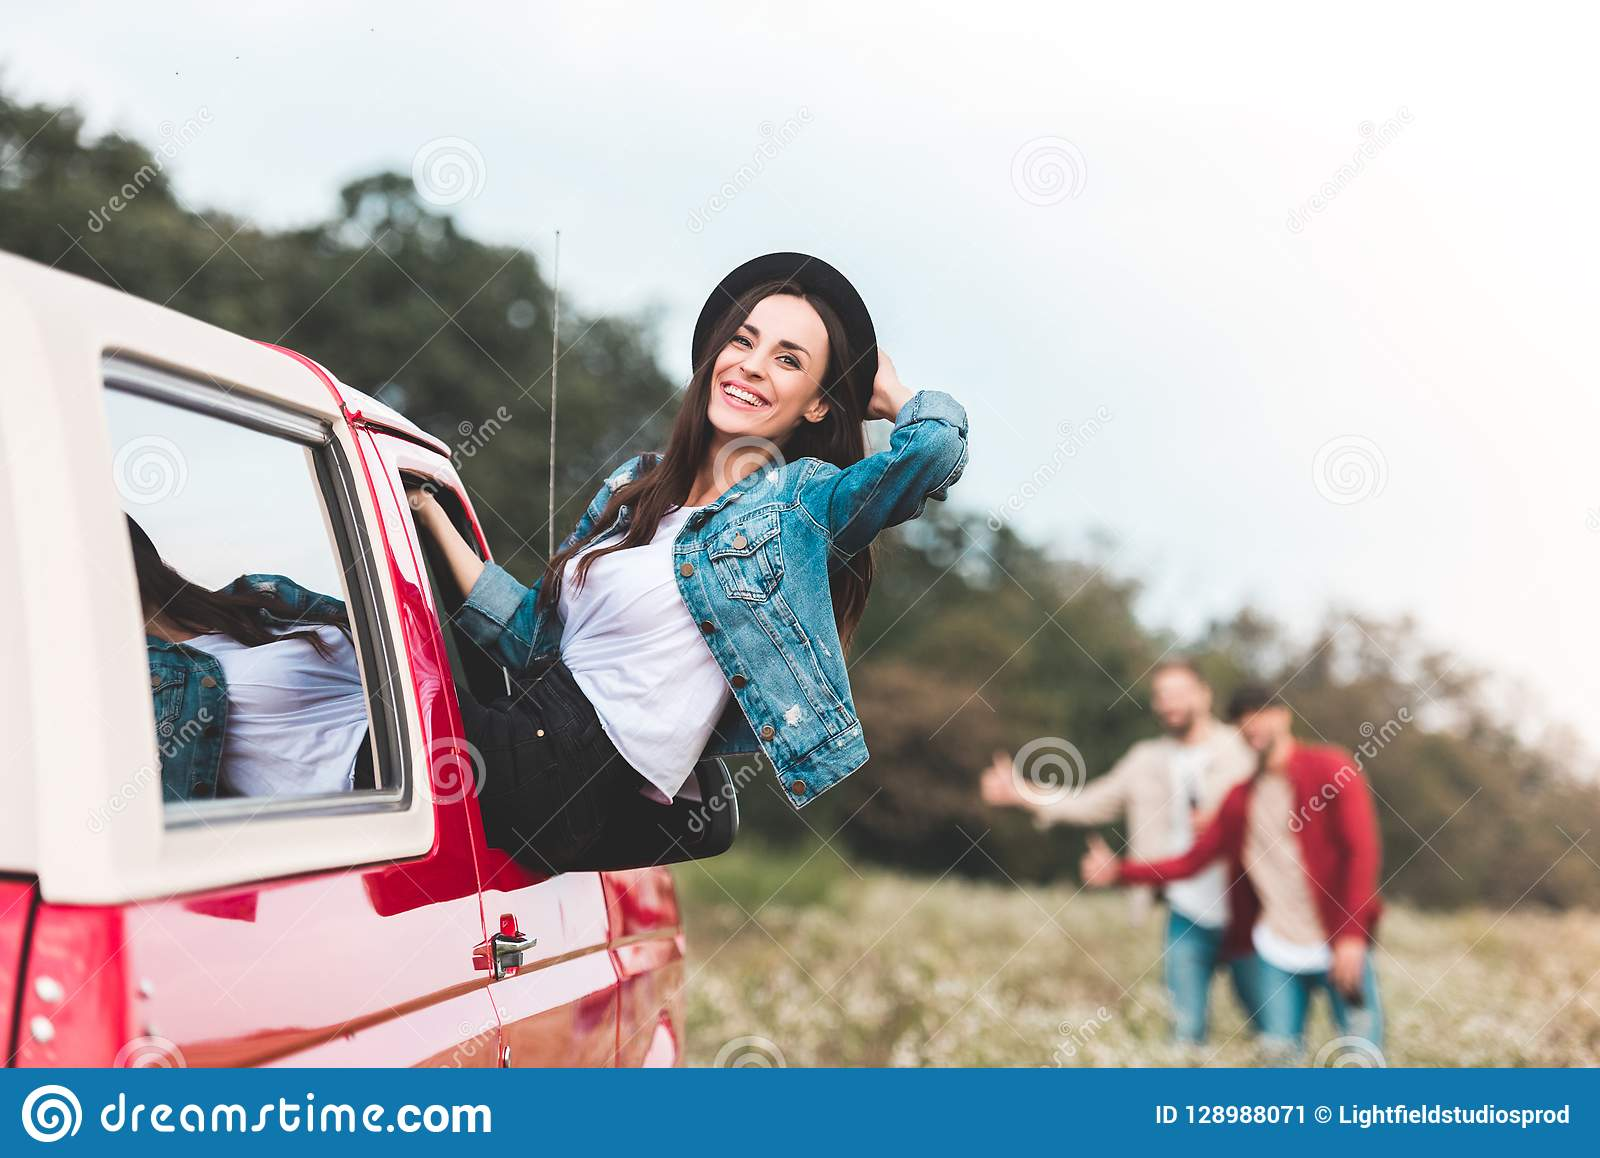 young woman outstretching from car window while men hitchhiking blurred